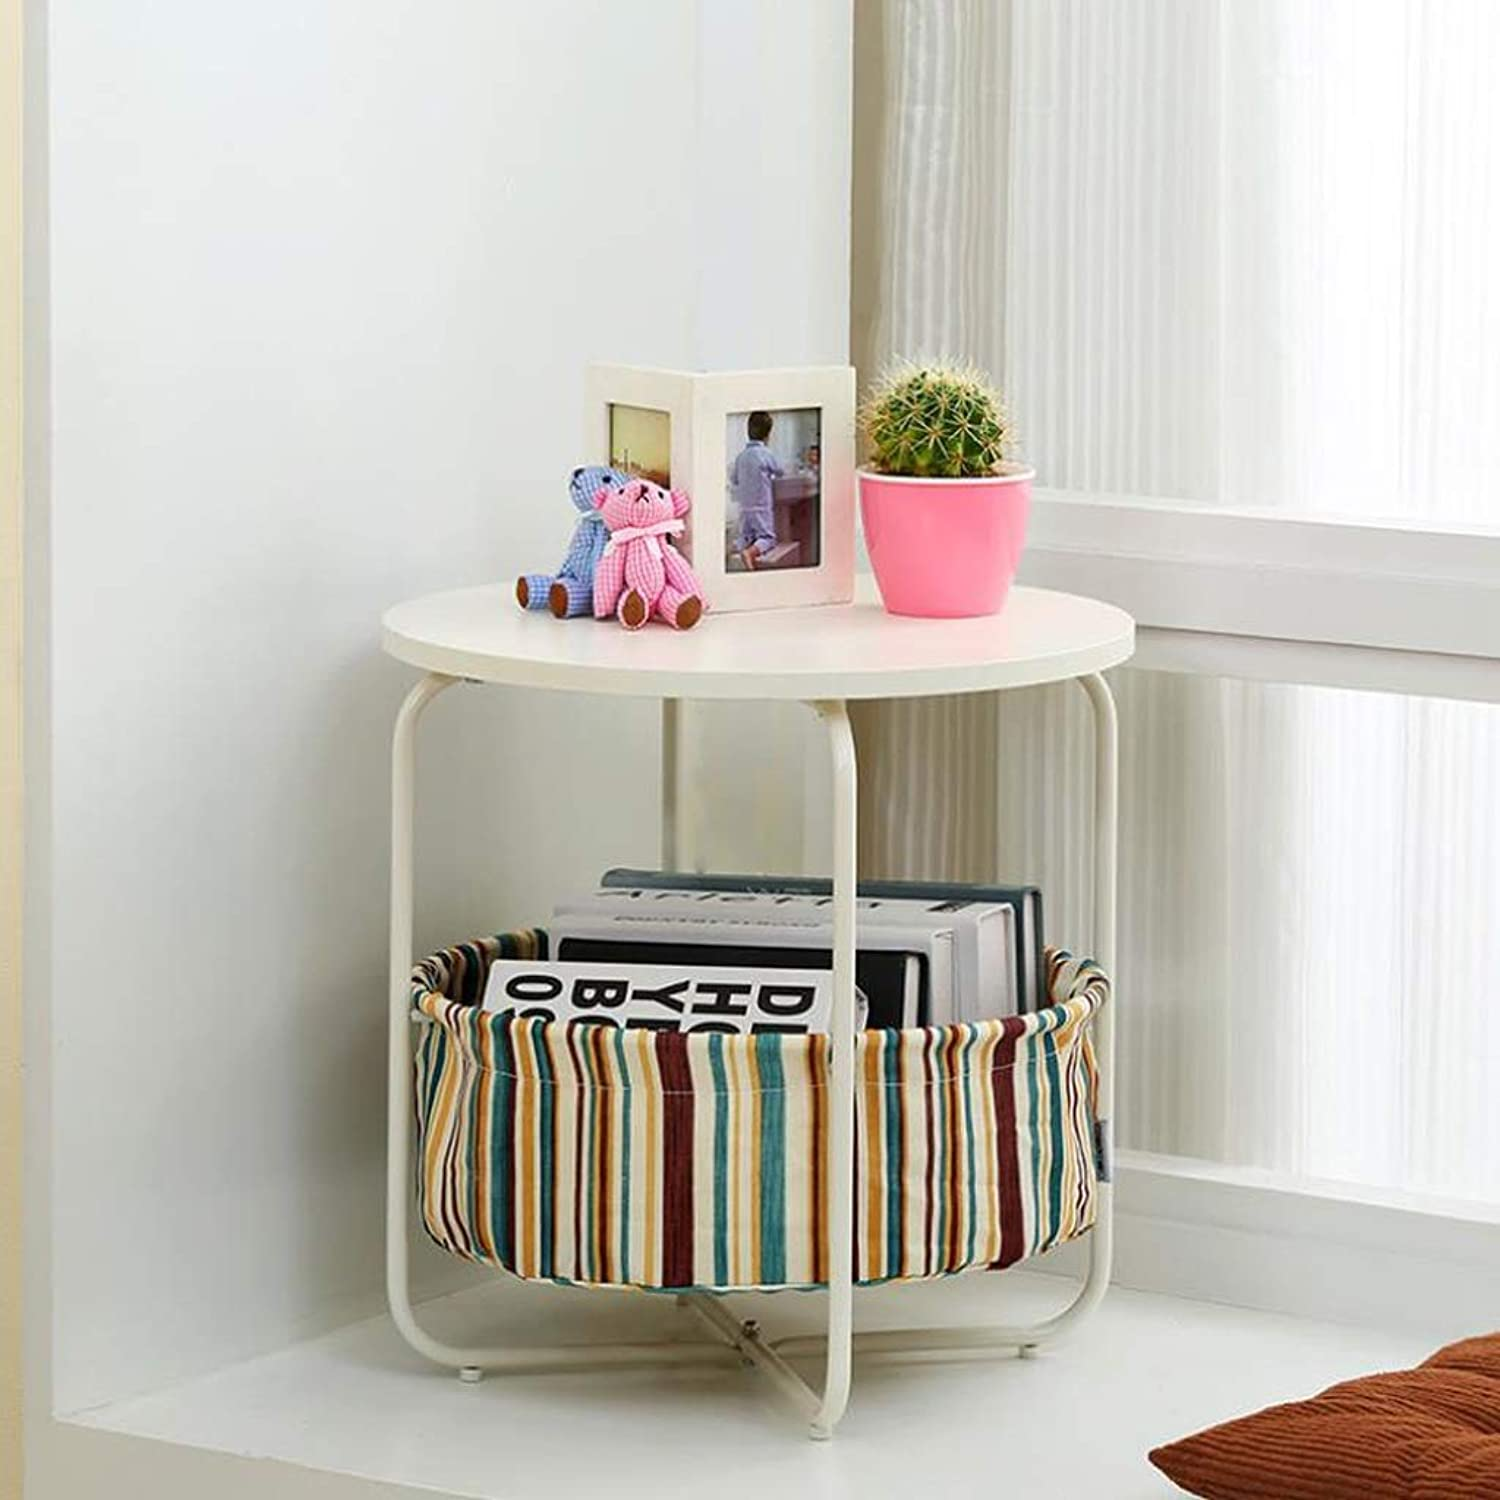 L-Life End Tables Side Table 2-Layer Sofa Side Table, Coffee End Table Storage Rack Round Multi-Function (color   A, Size   43cm)